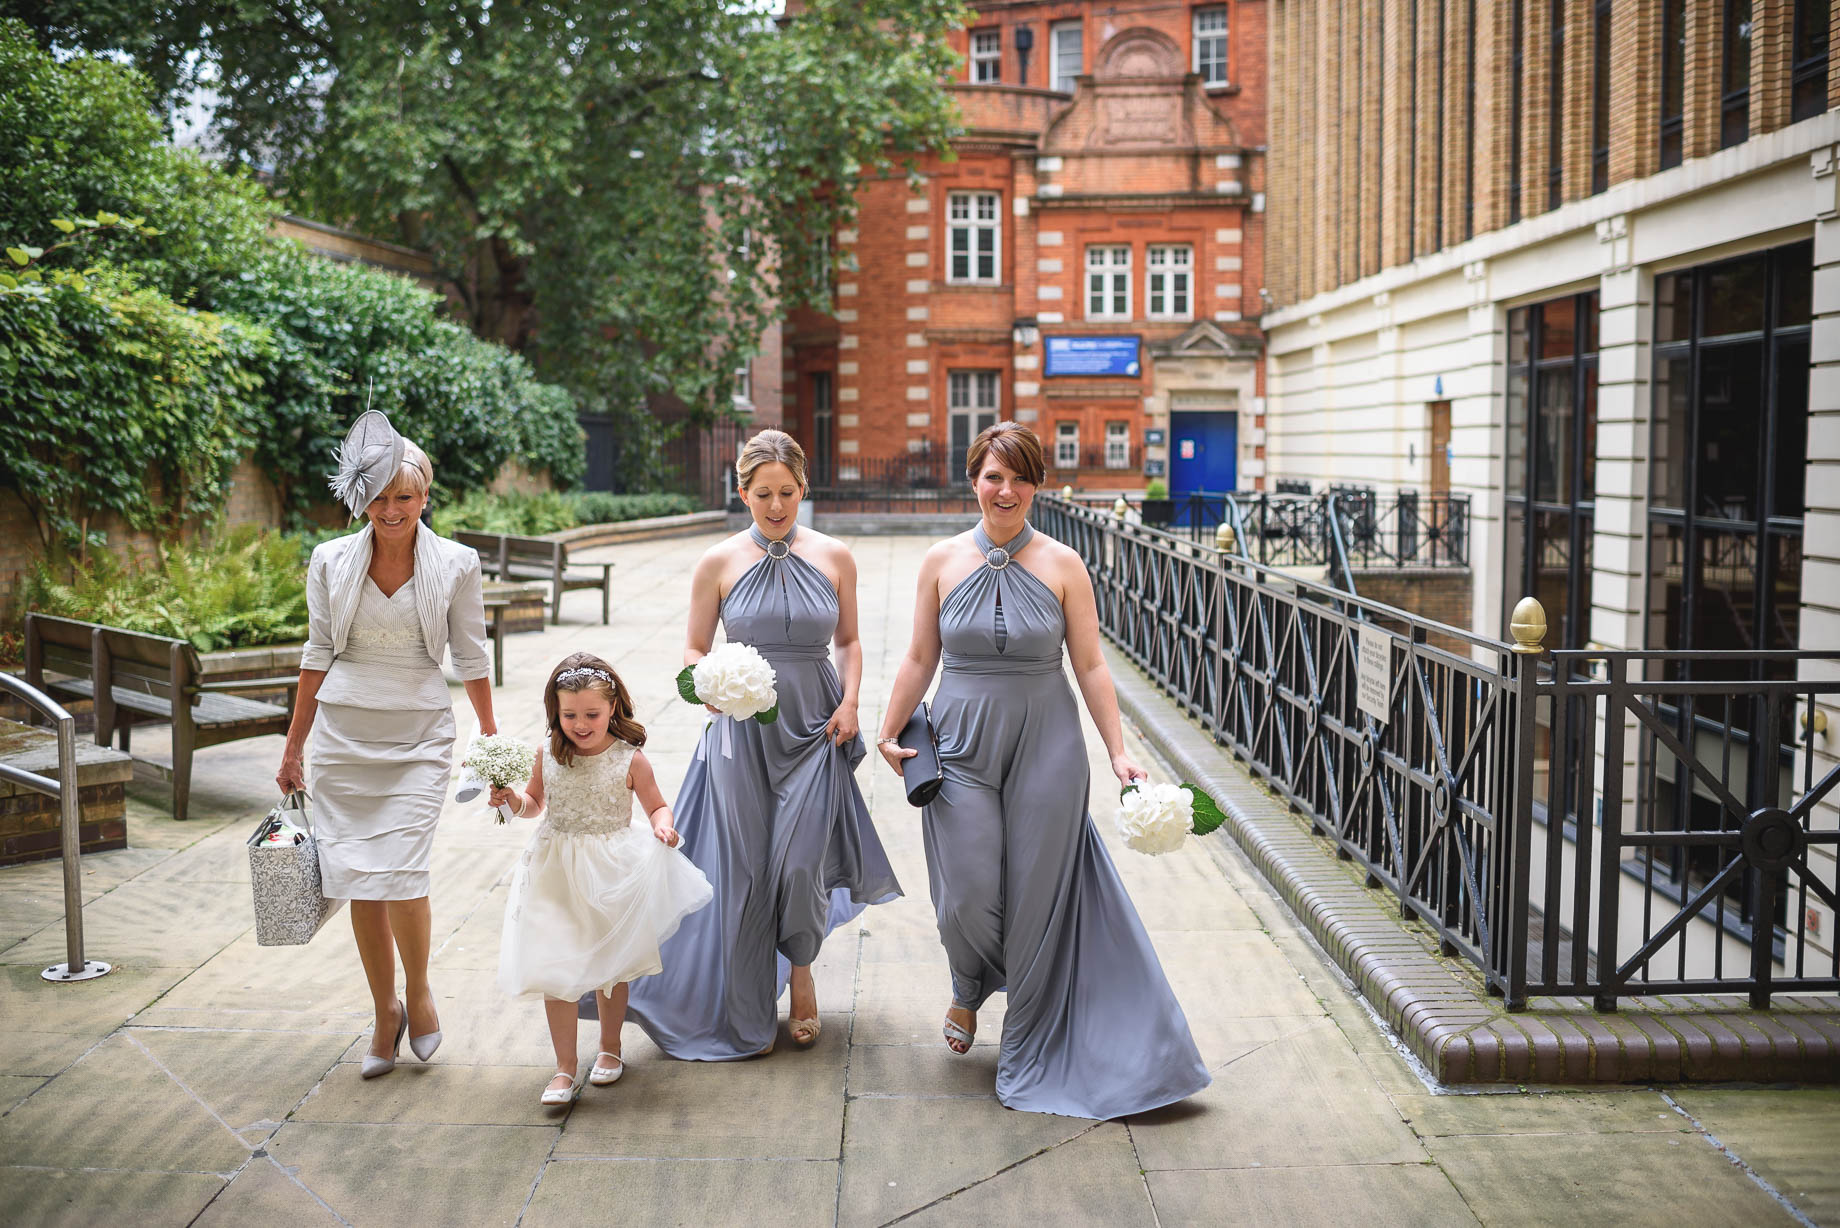 Shoreditch wedding photography - Guy Collier - Kat and Henry (61 of 200)